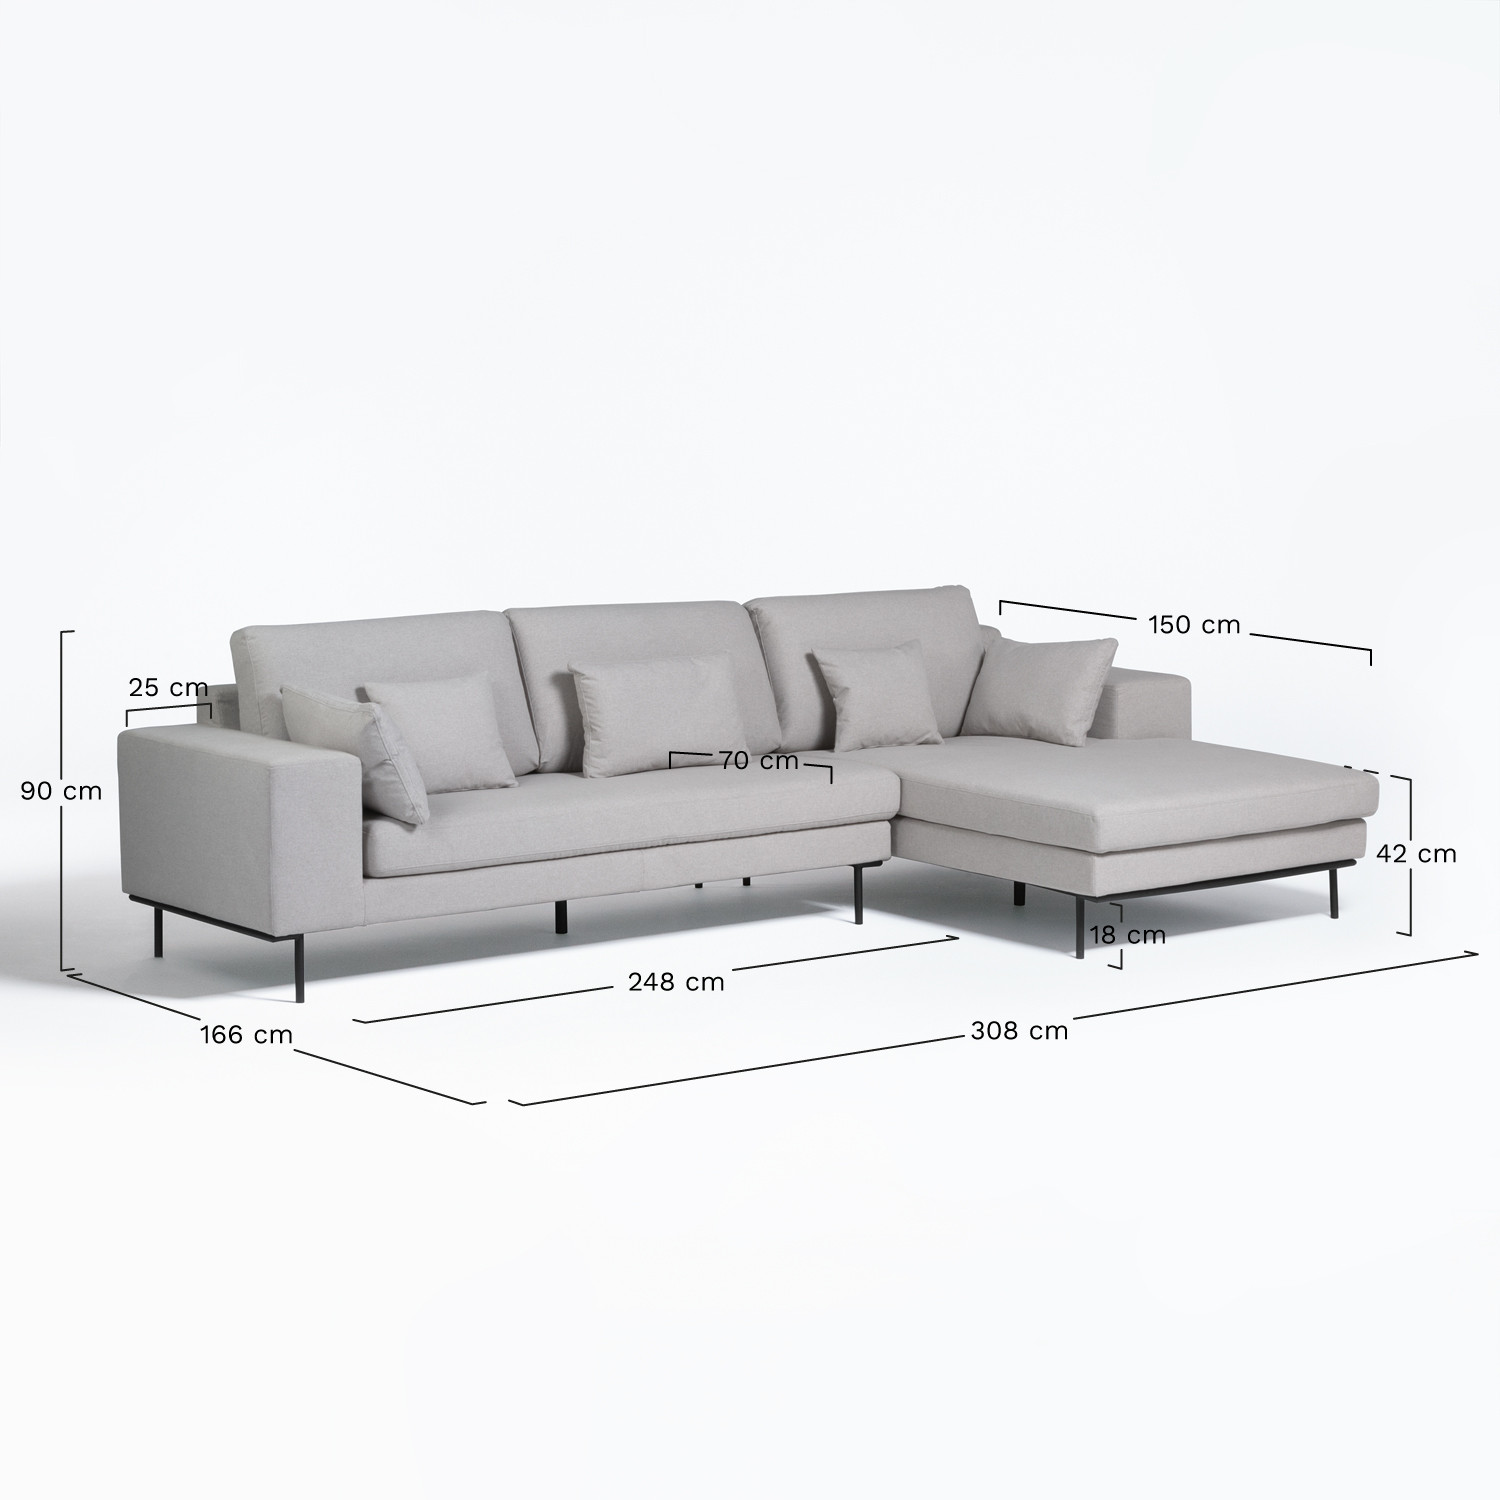 Picture of: Chaise Longue 4 Seater Sofa In Agon Fabric Sklum